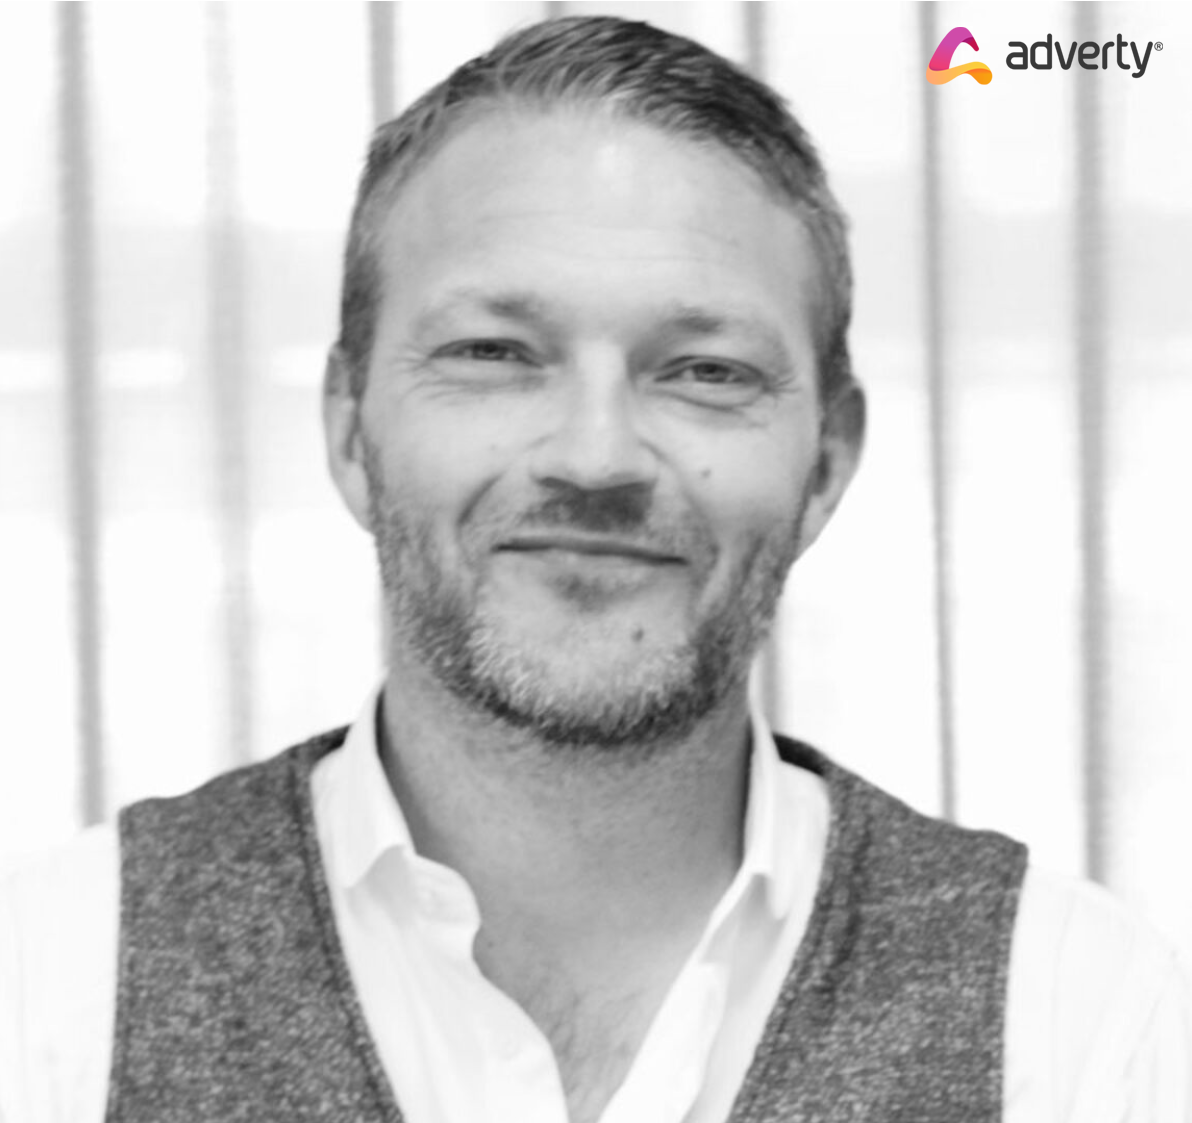 Adverty utser tidigare GroupM Chief Digital Product and Partnership Officer Kenny Spångberg som Chief Revenue Officer